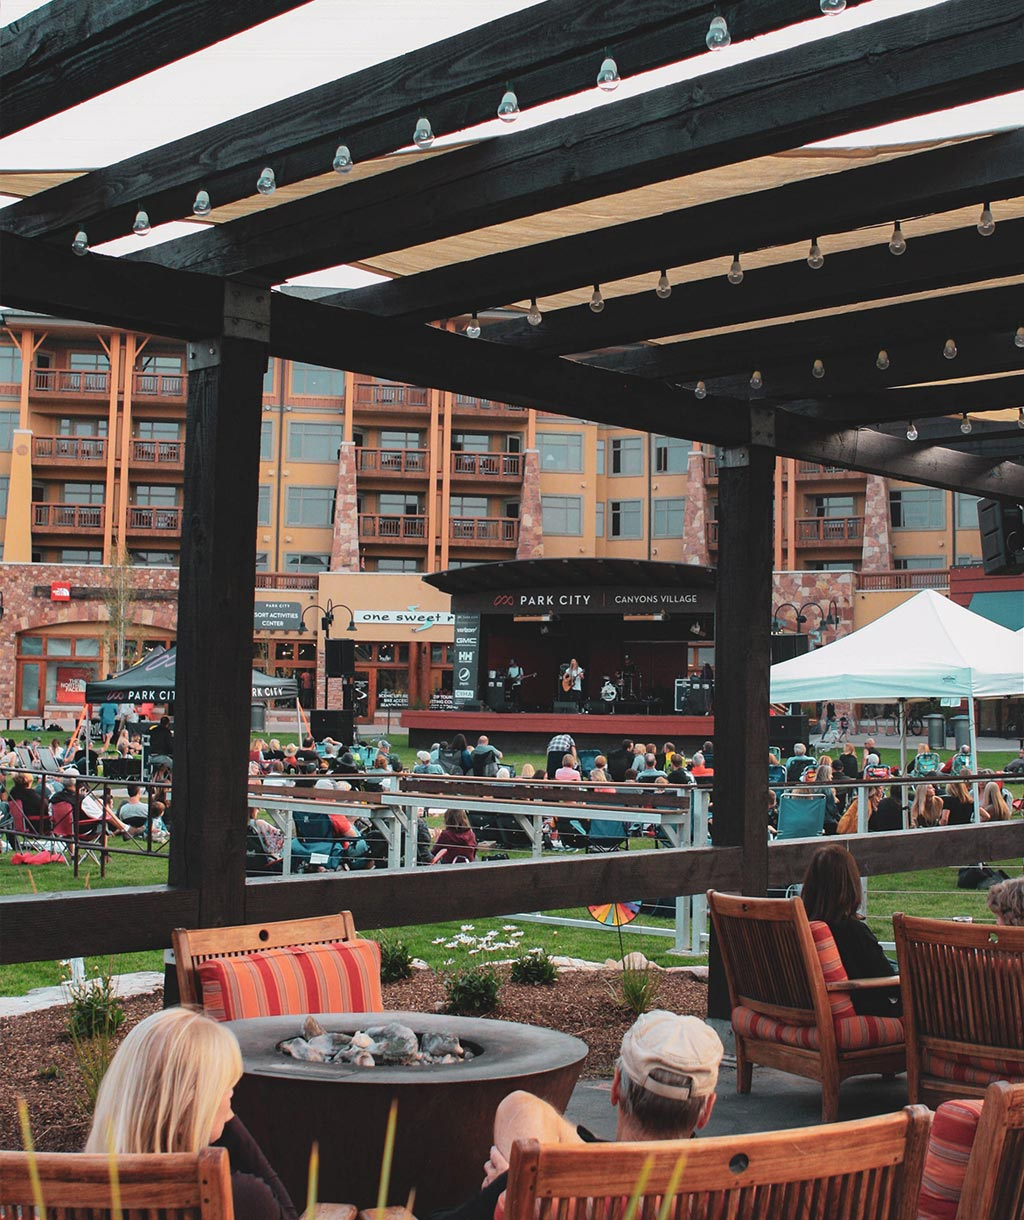 concert goers at canyons village outdoor concert series in park city utah